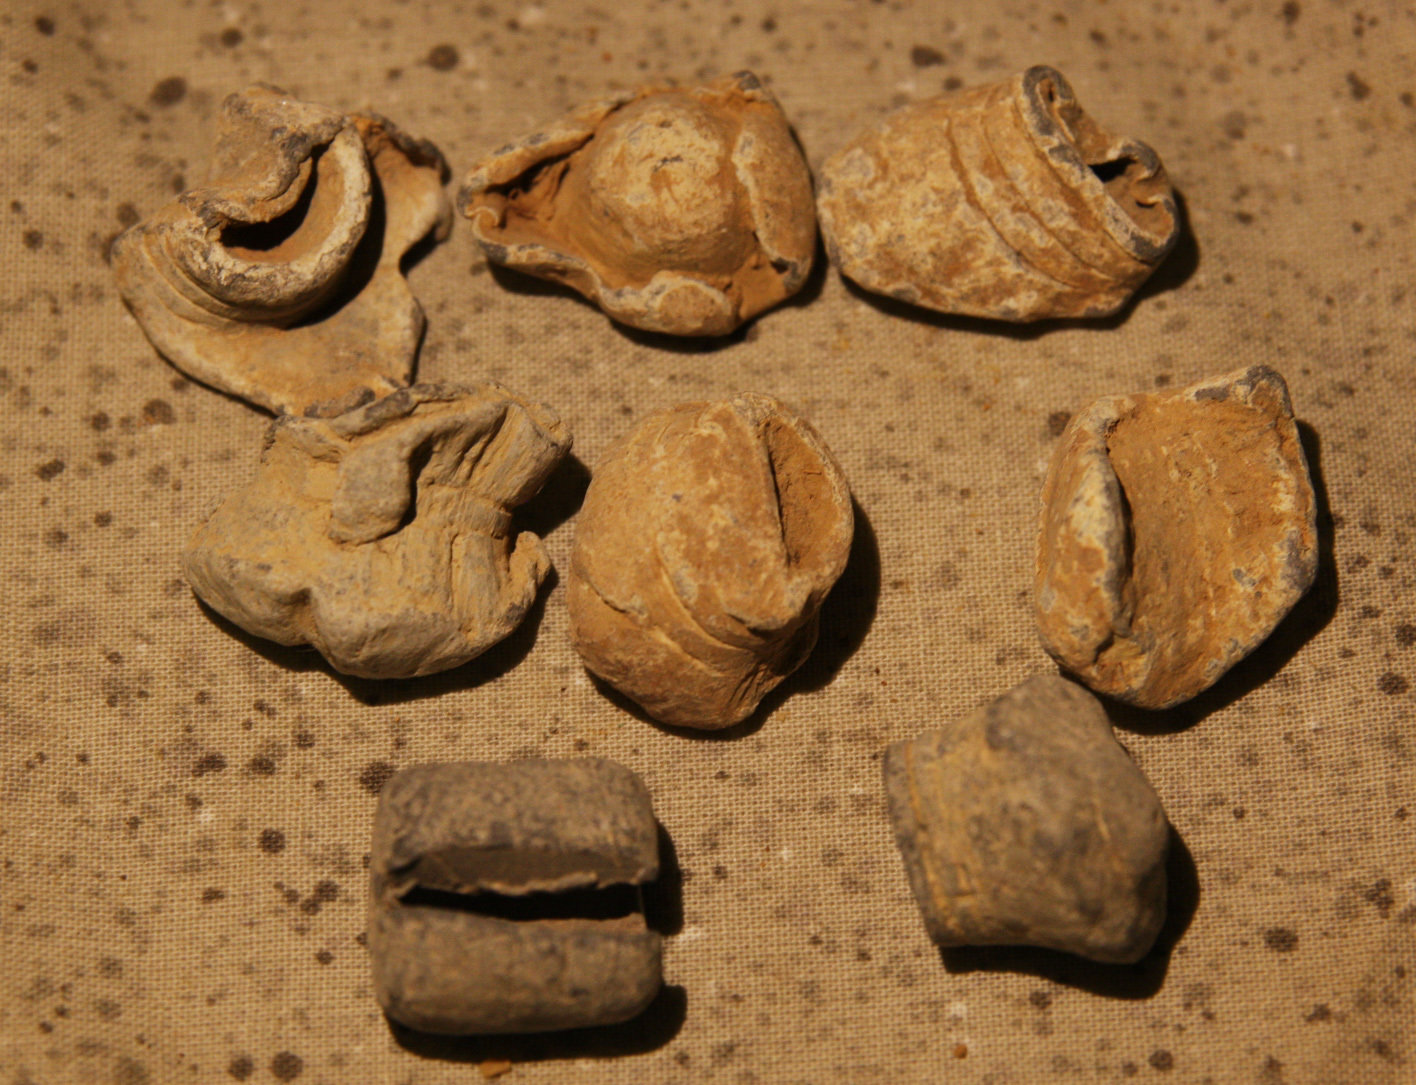 JUST ADDED ON 5/16 - BATTLE OF FORT FISHER - Group of 7 Fired Bullets & Lead Relic - Some Mushroomed / Partial Mushroomed B-FF01